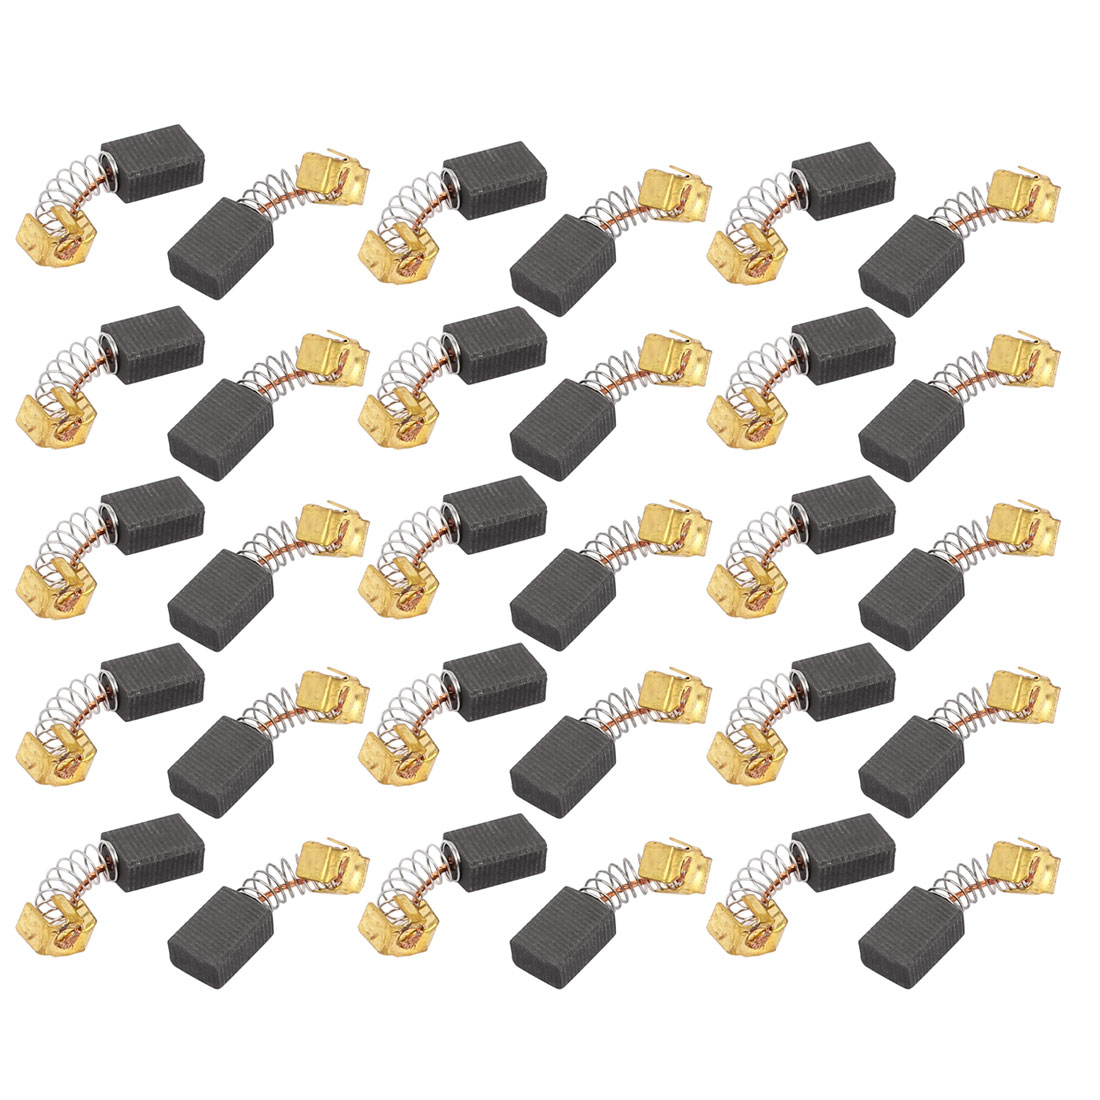 15 Pairs 26x11x7x5mm Carbon Brushes Power Tool for Electric Hammer Drill Motor